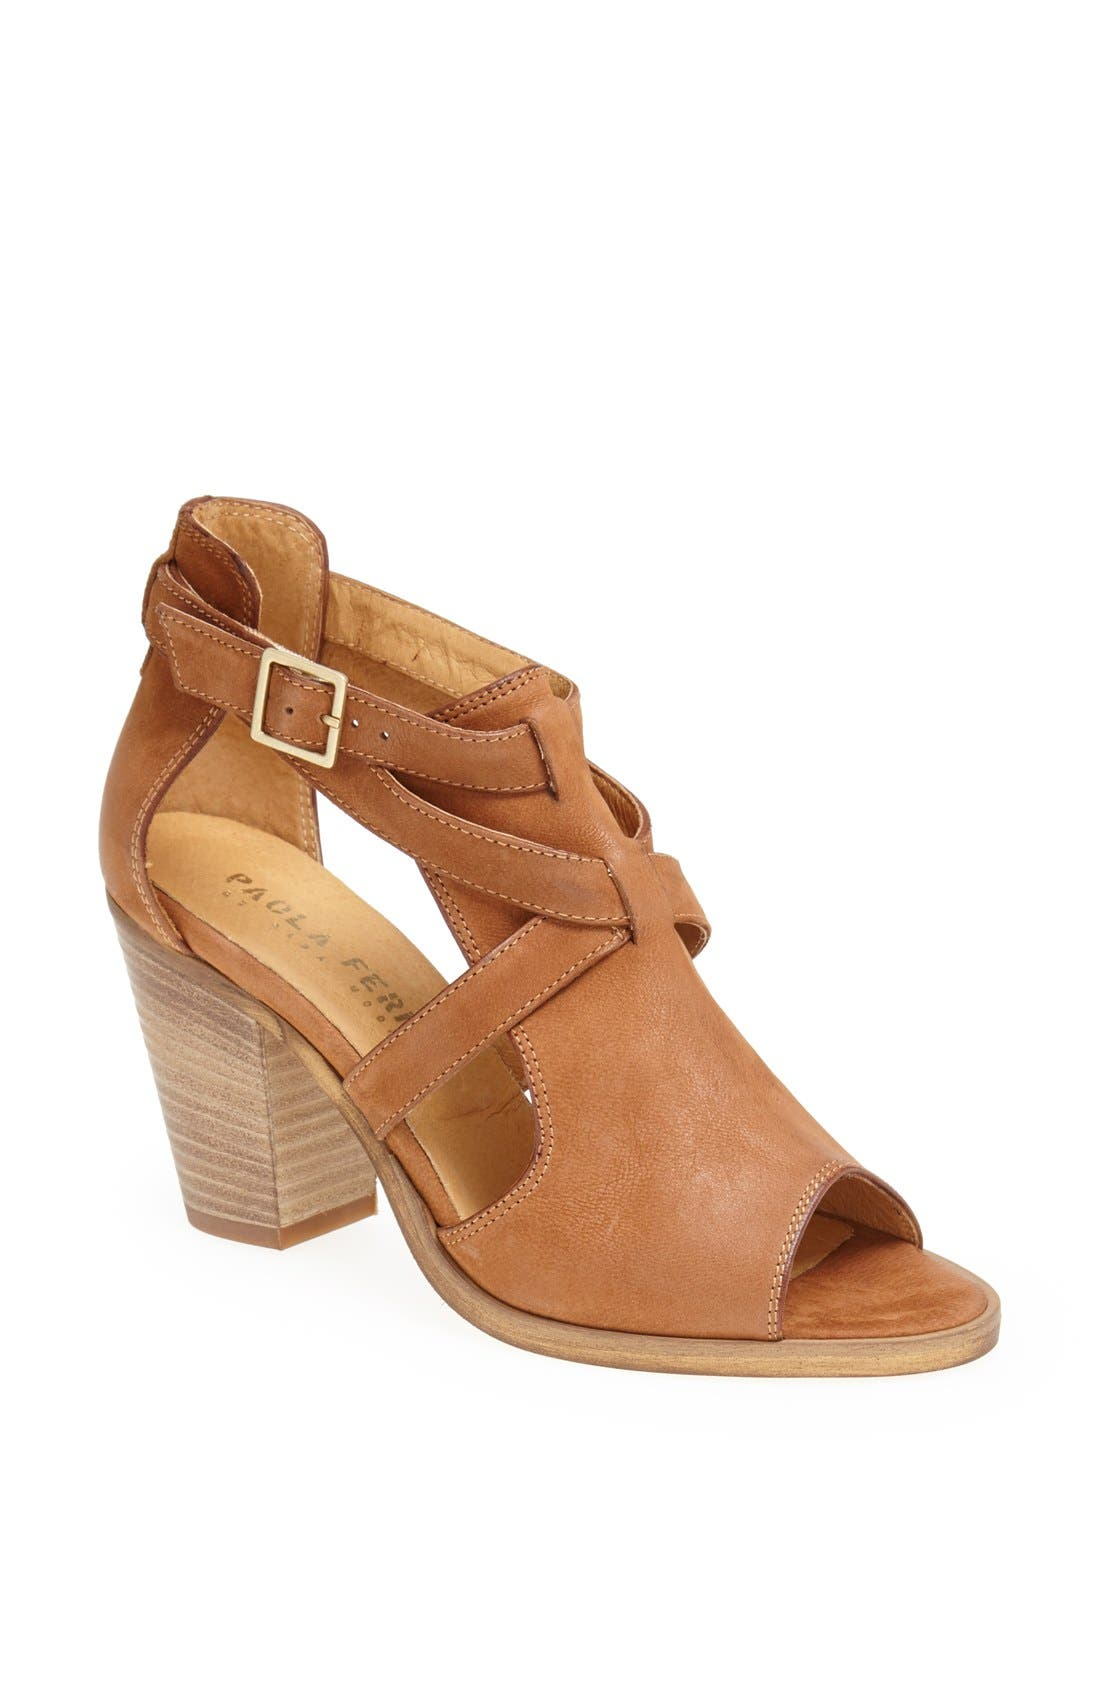 Alternate Image 1 Selected - Paola Ferri Leather Sandal